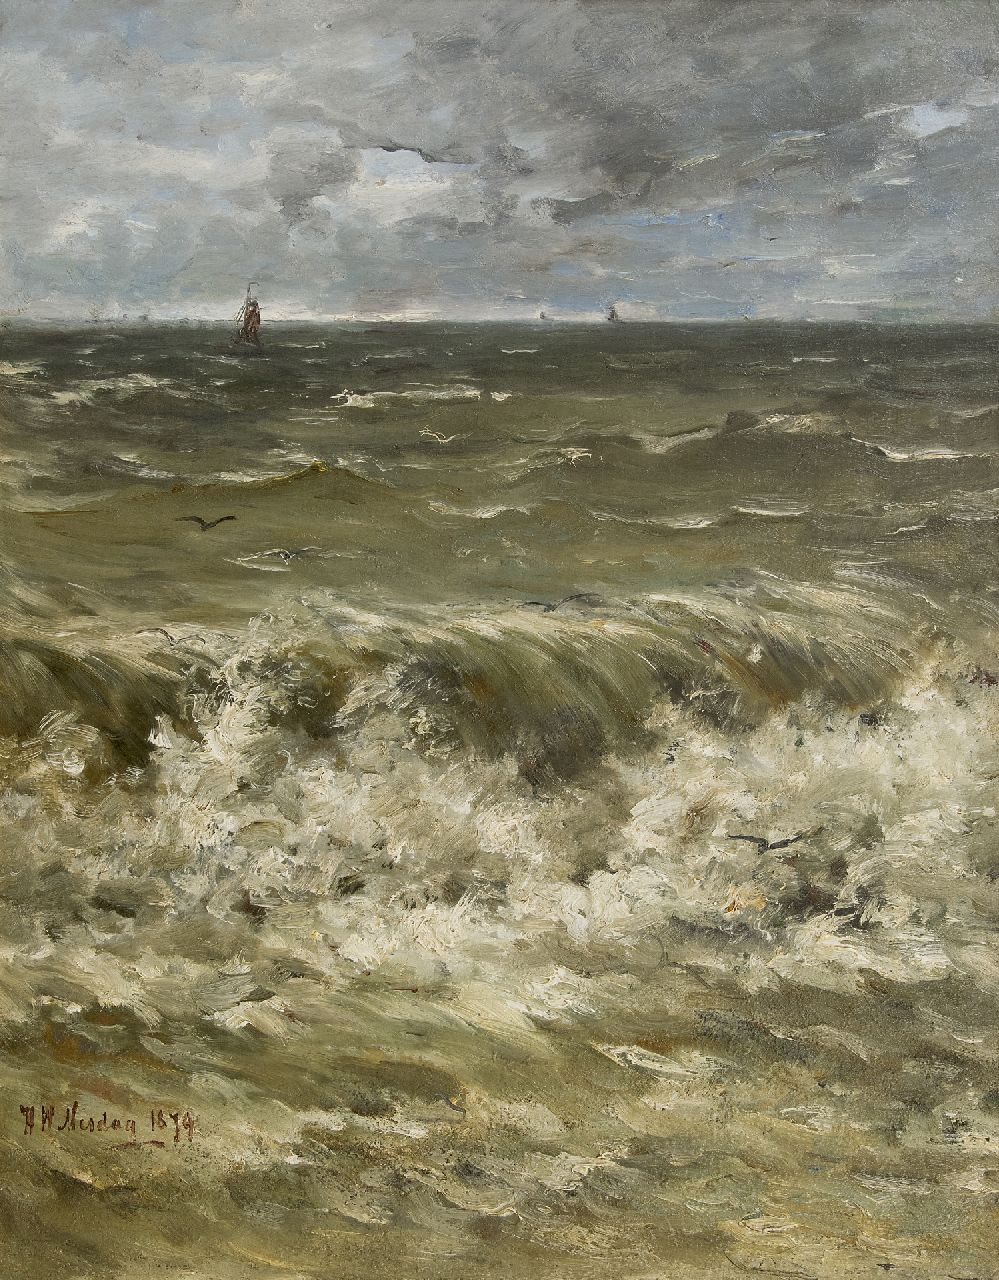 Mesdag H.W.  | Hendrik Willem Mesdag | Paintings offered for sale | Breakers with ships in the distance, oil on canvas laid down on panel 88.6 x 69.5 cm, signed l.l. and dated 1879